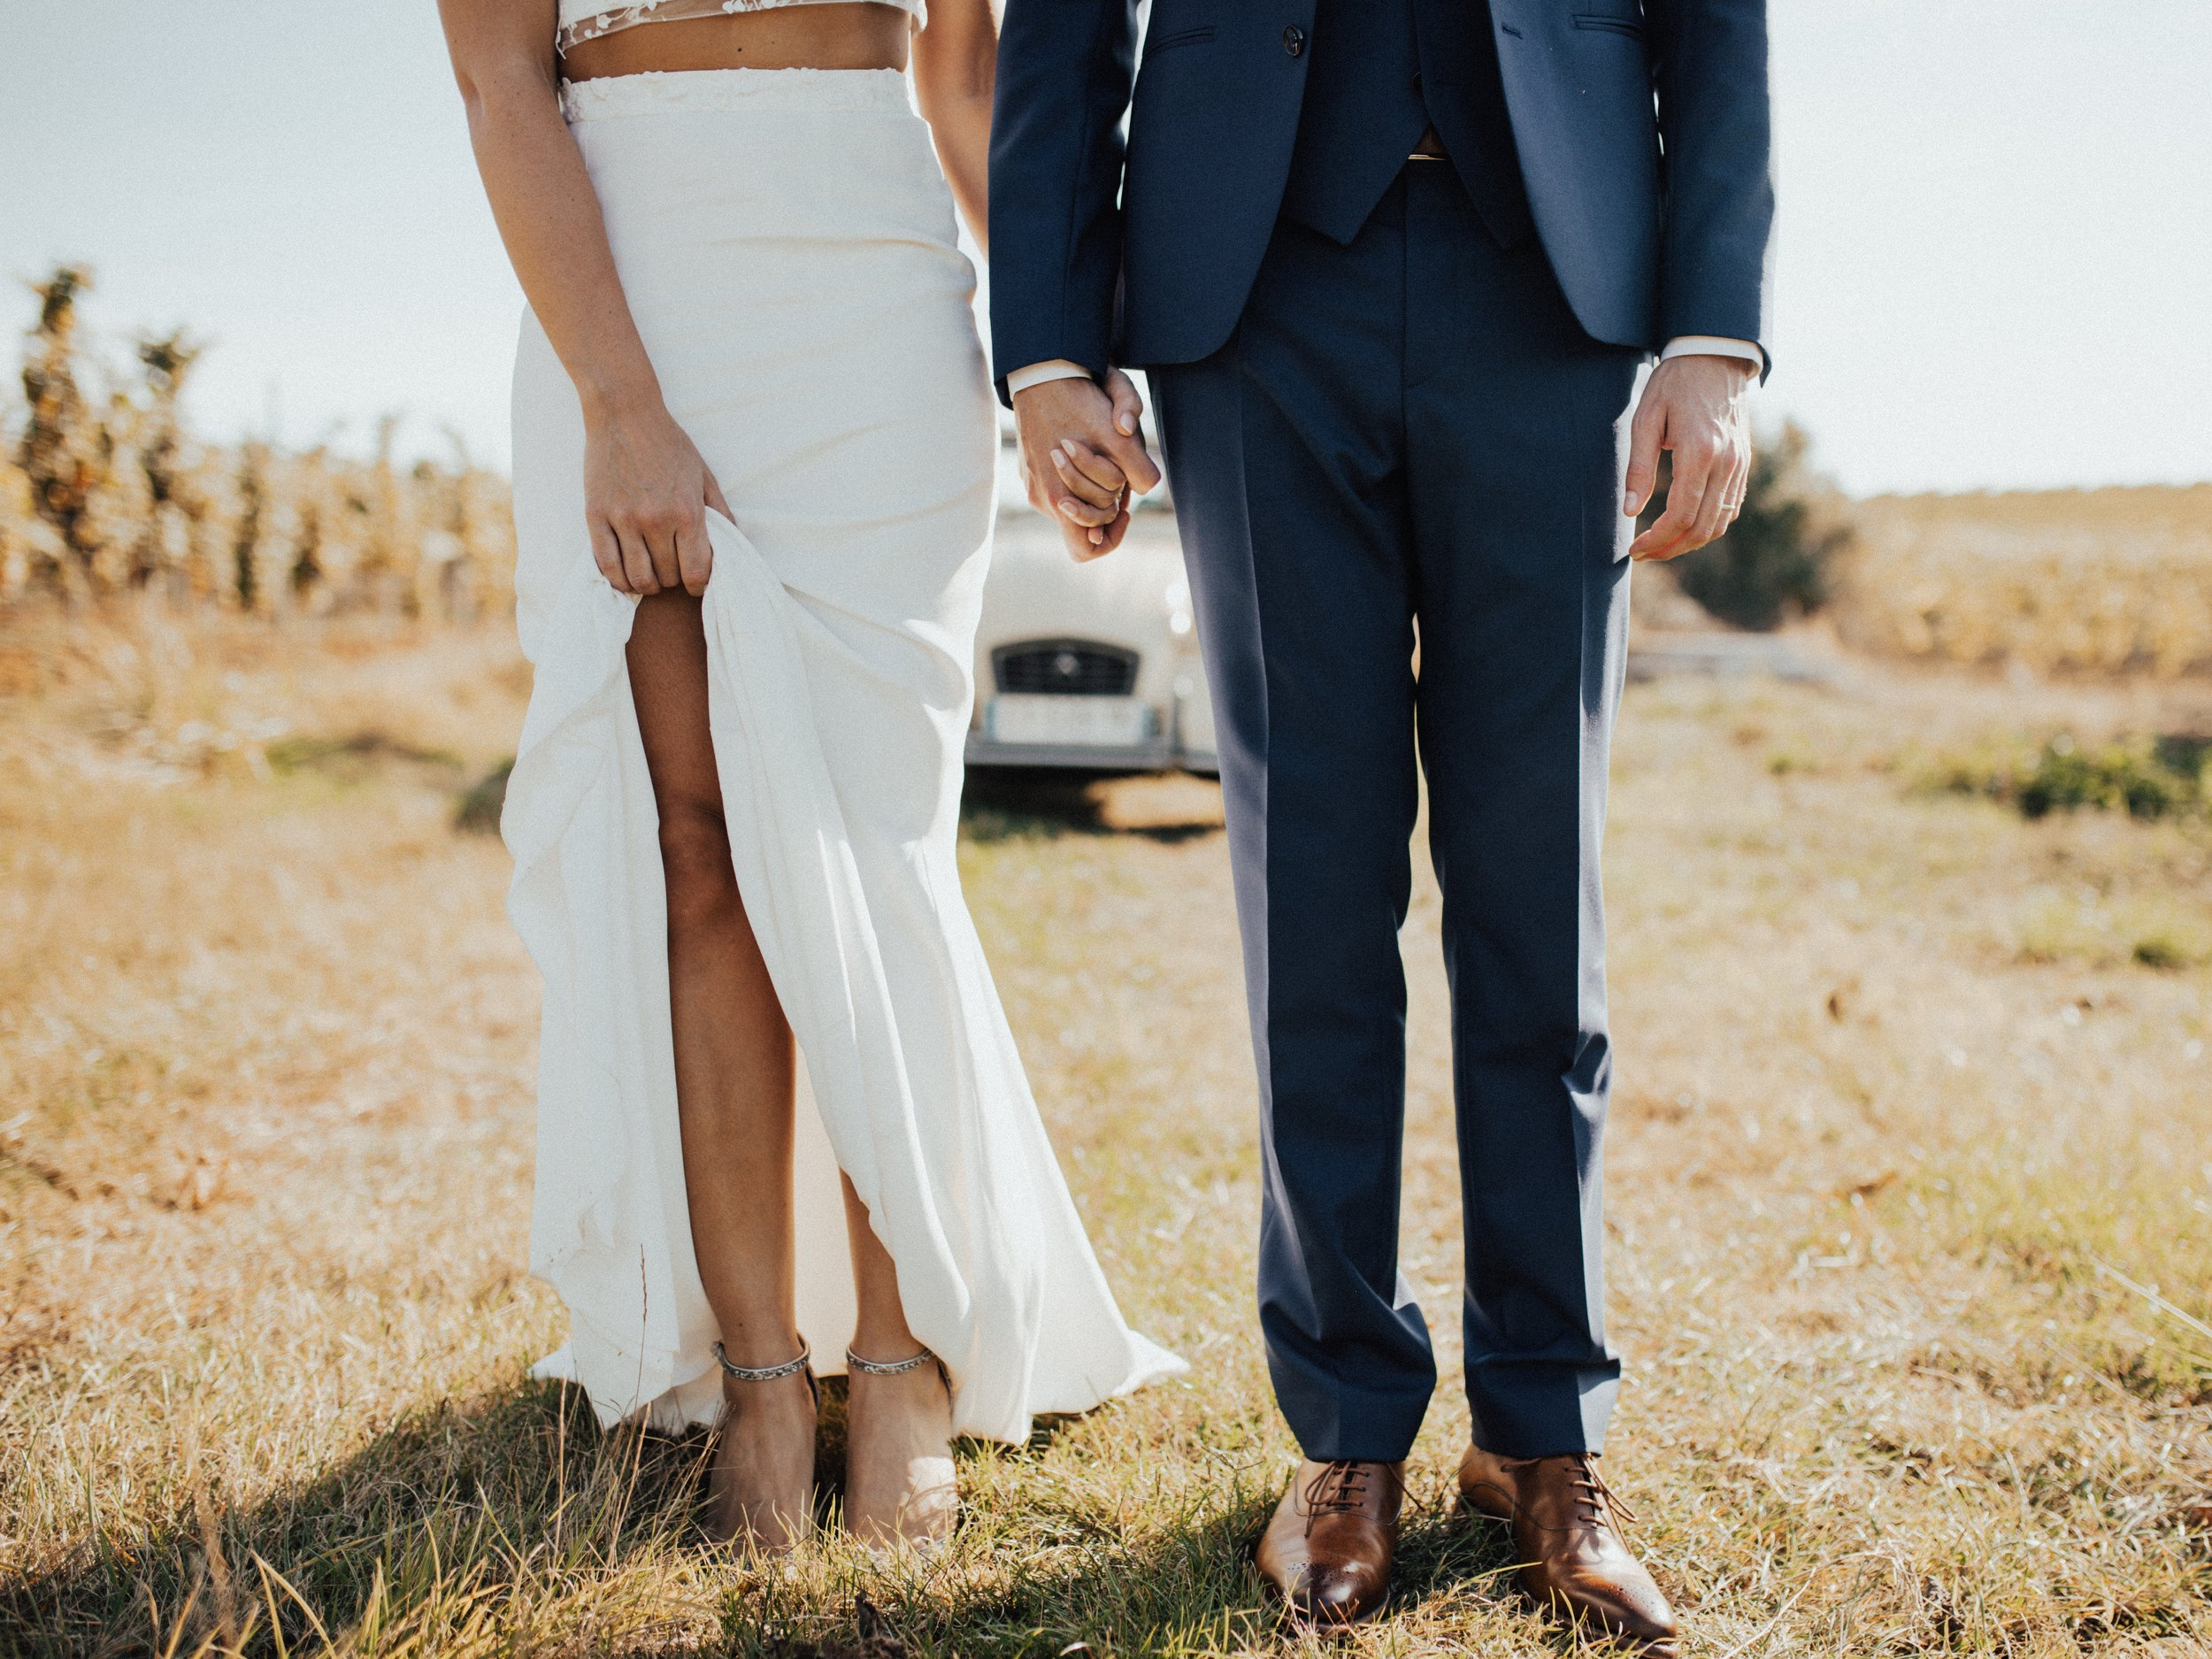 Livermore Wedding Country East Bay Area Rustic Couple Holding Hands Planner Katie Laines Design and Coordination